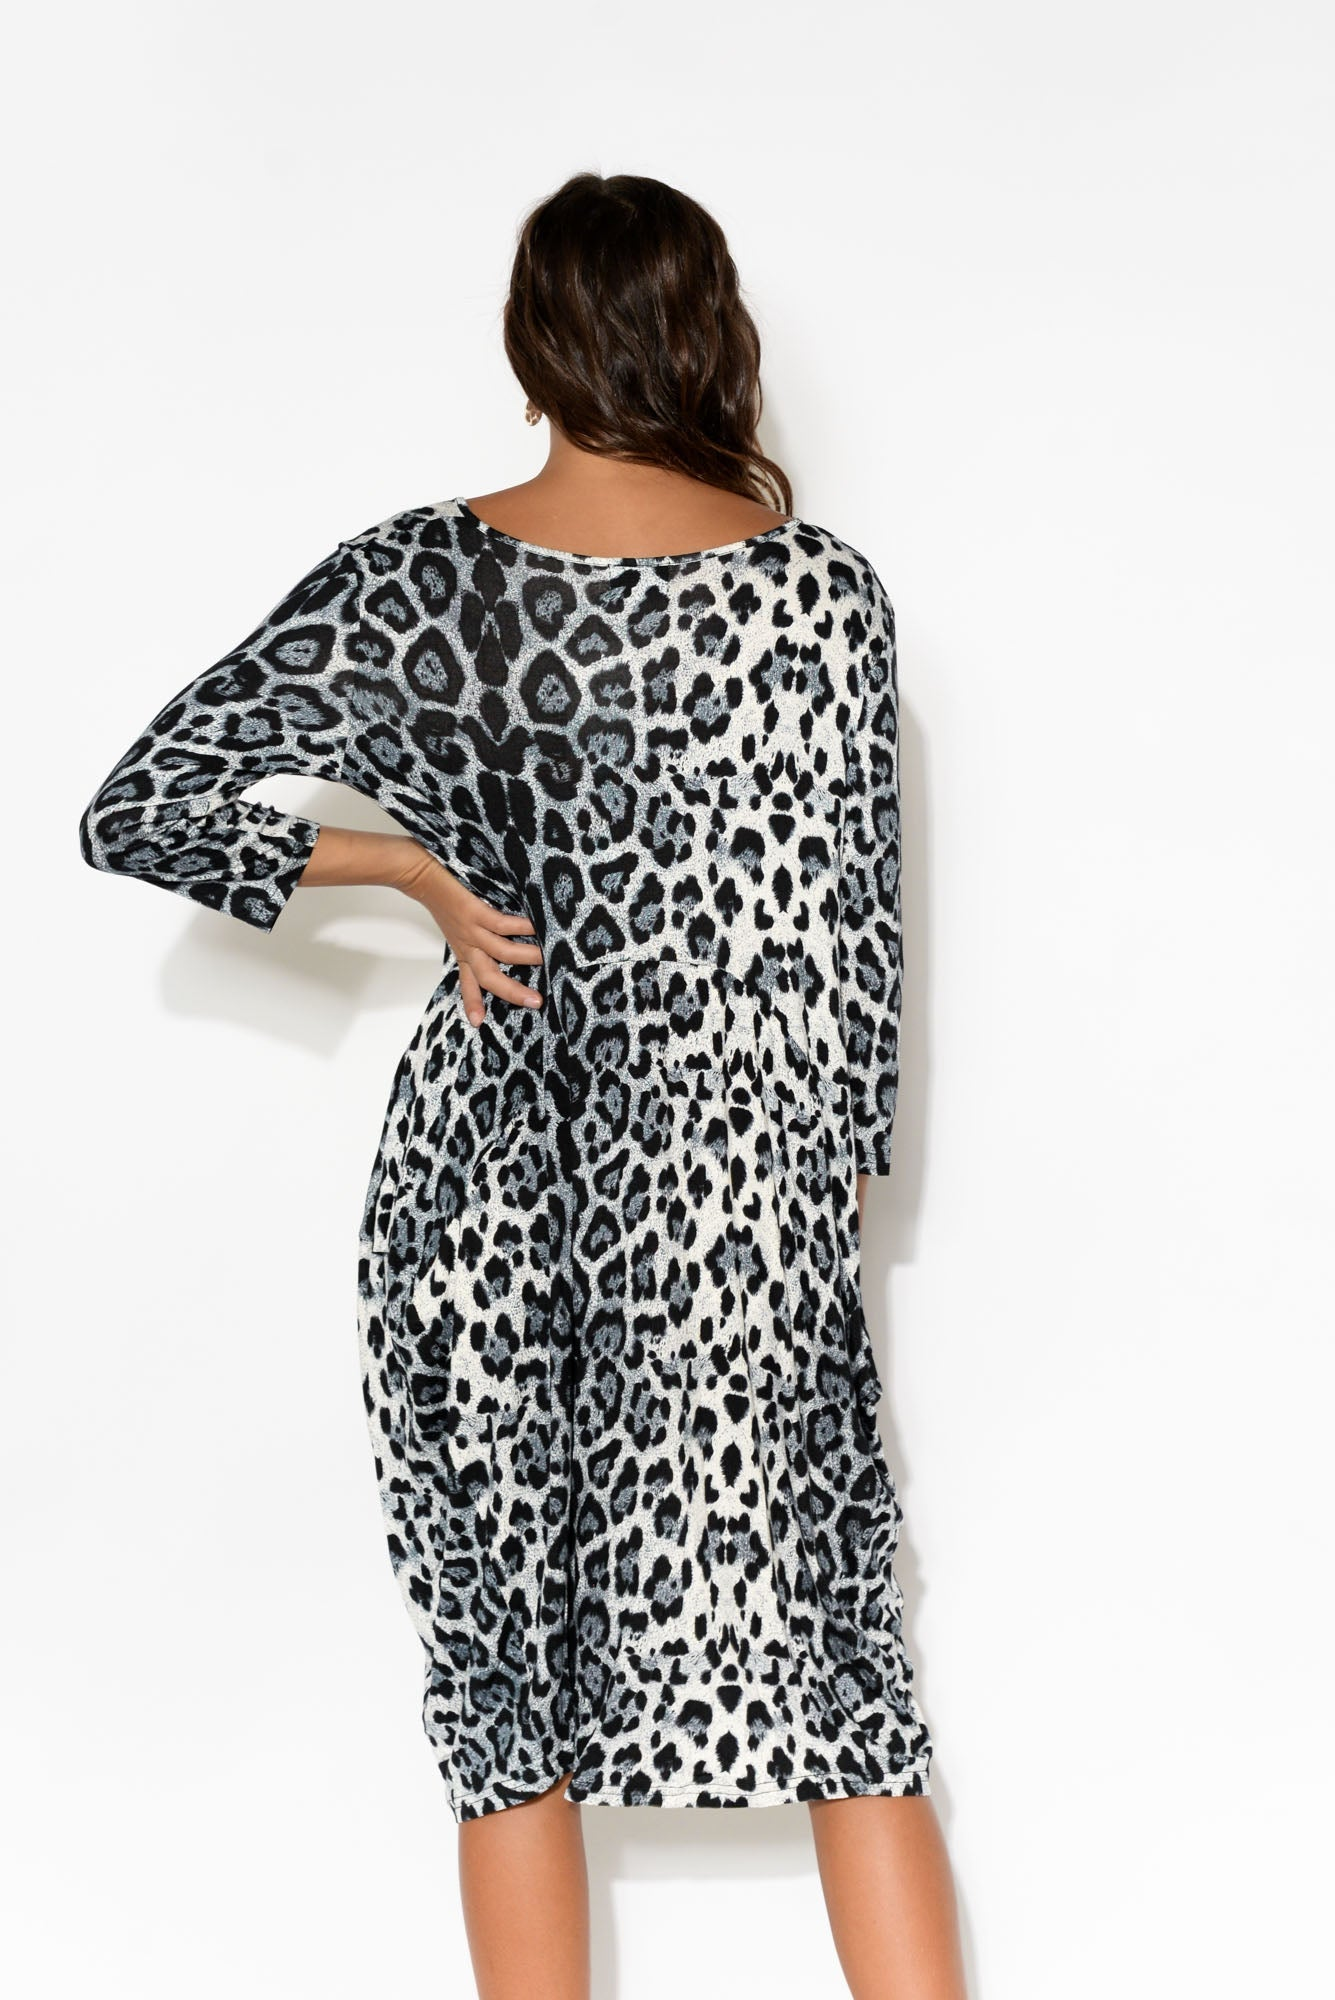 Coco Grey Leopard Sleeved Dress